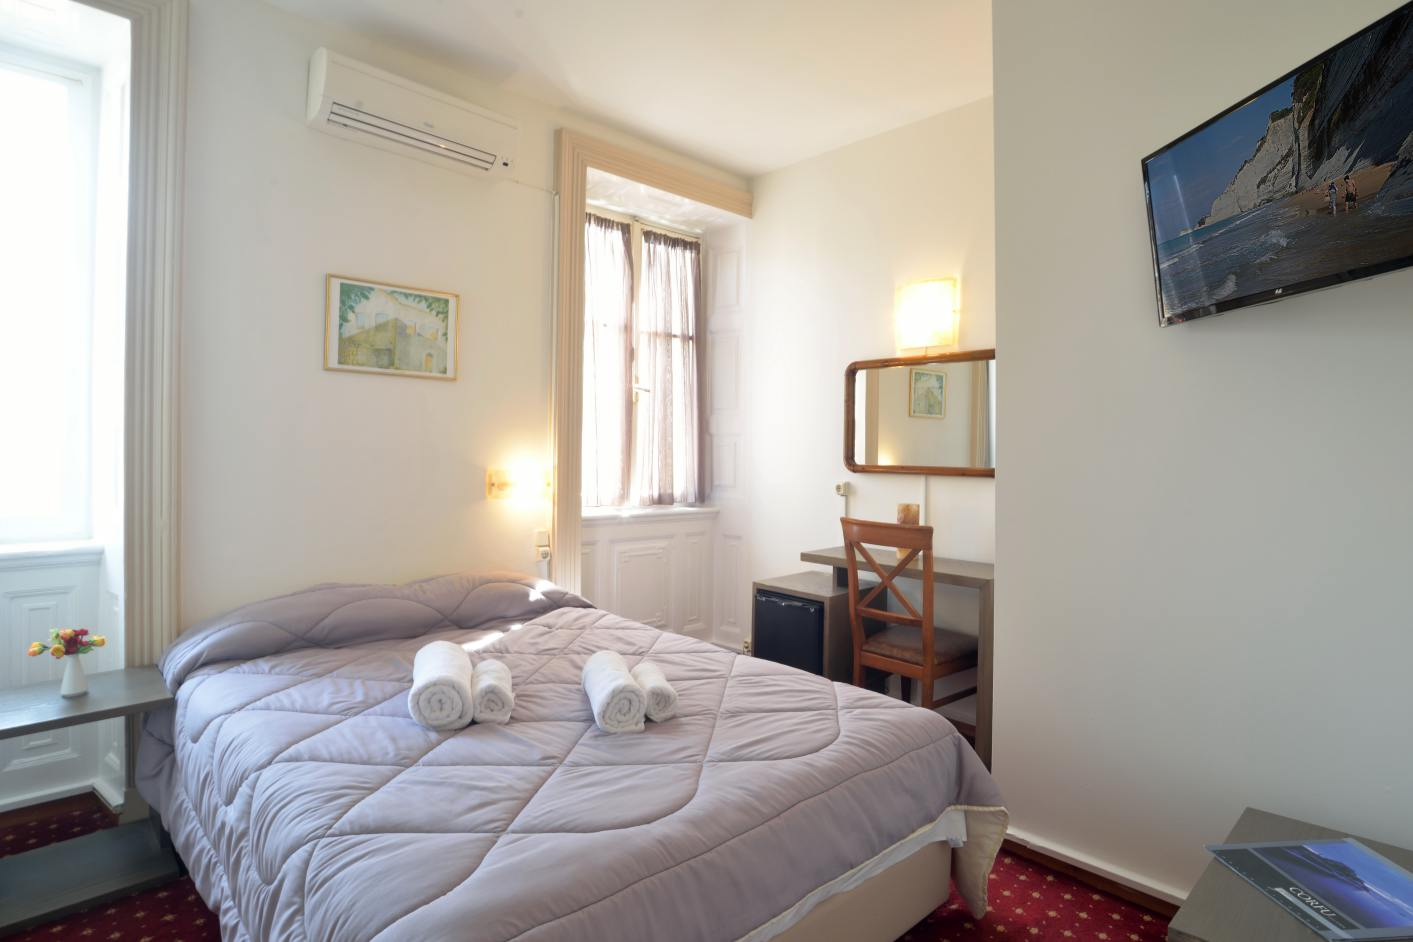 Single with semi double bed konstantinoupolis hotel corfu - Queen bed ideas for small room ...